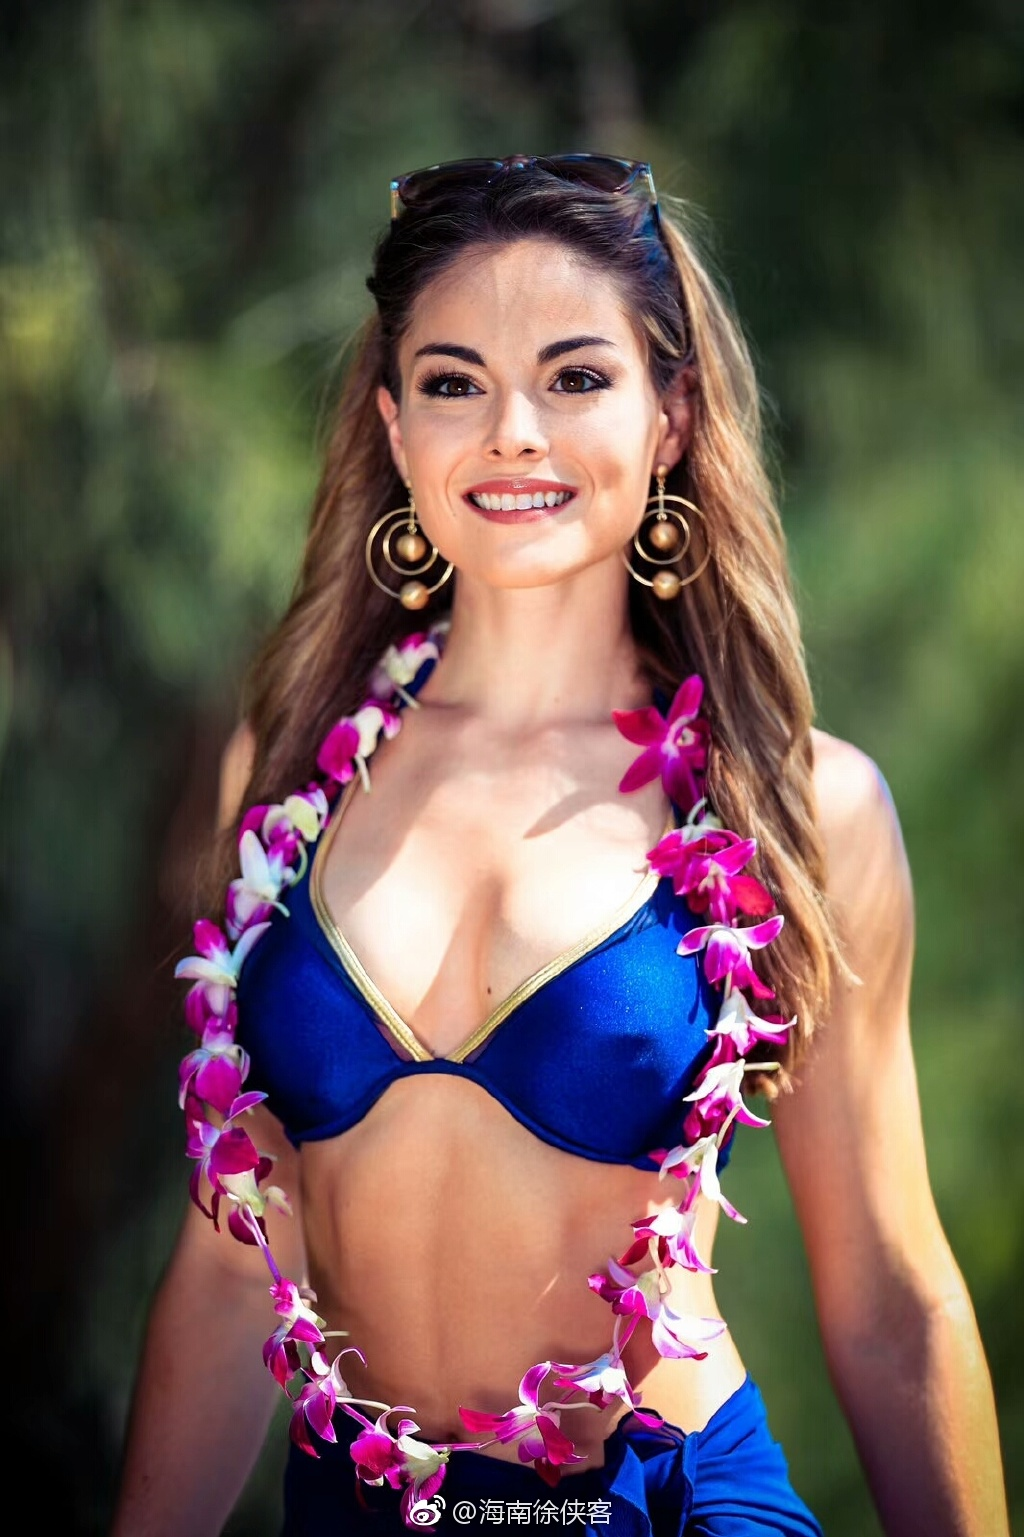 marisa butler, miss earth usa 2021/top 30 de miss world 2018. - Página 5 6768c010